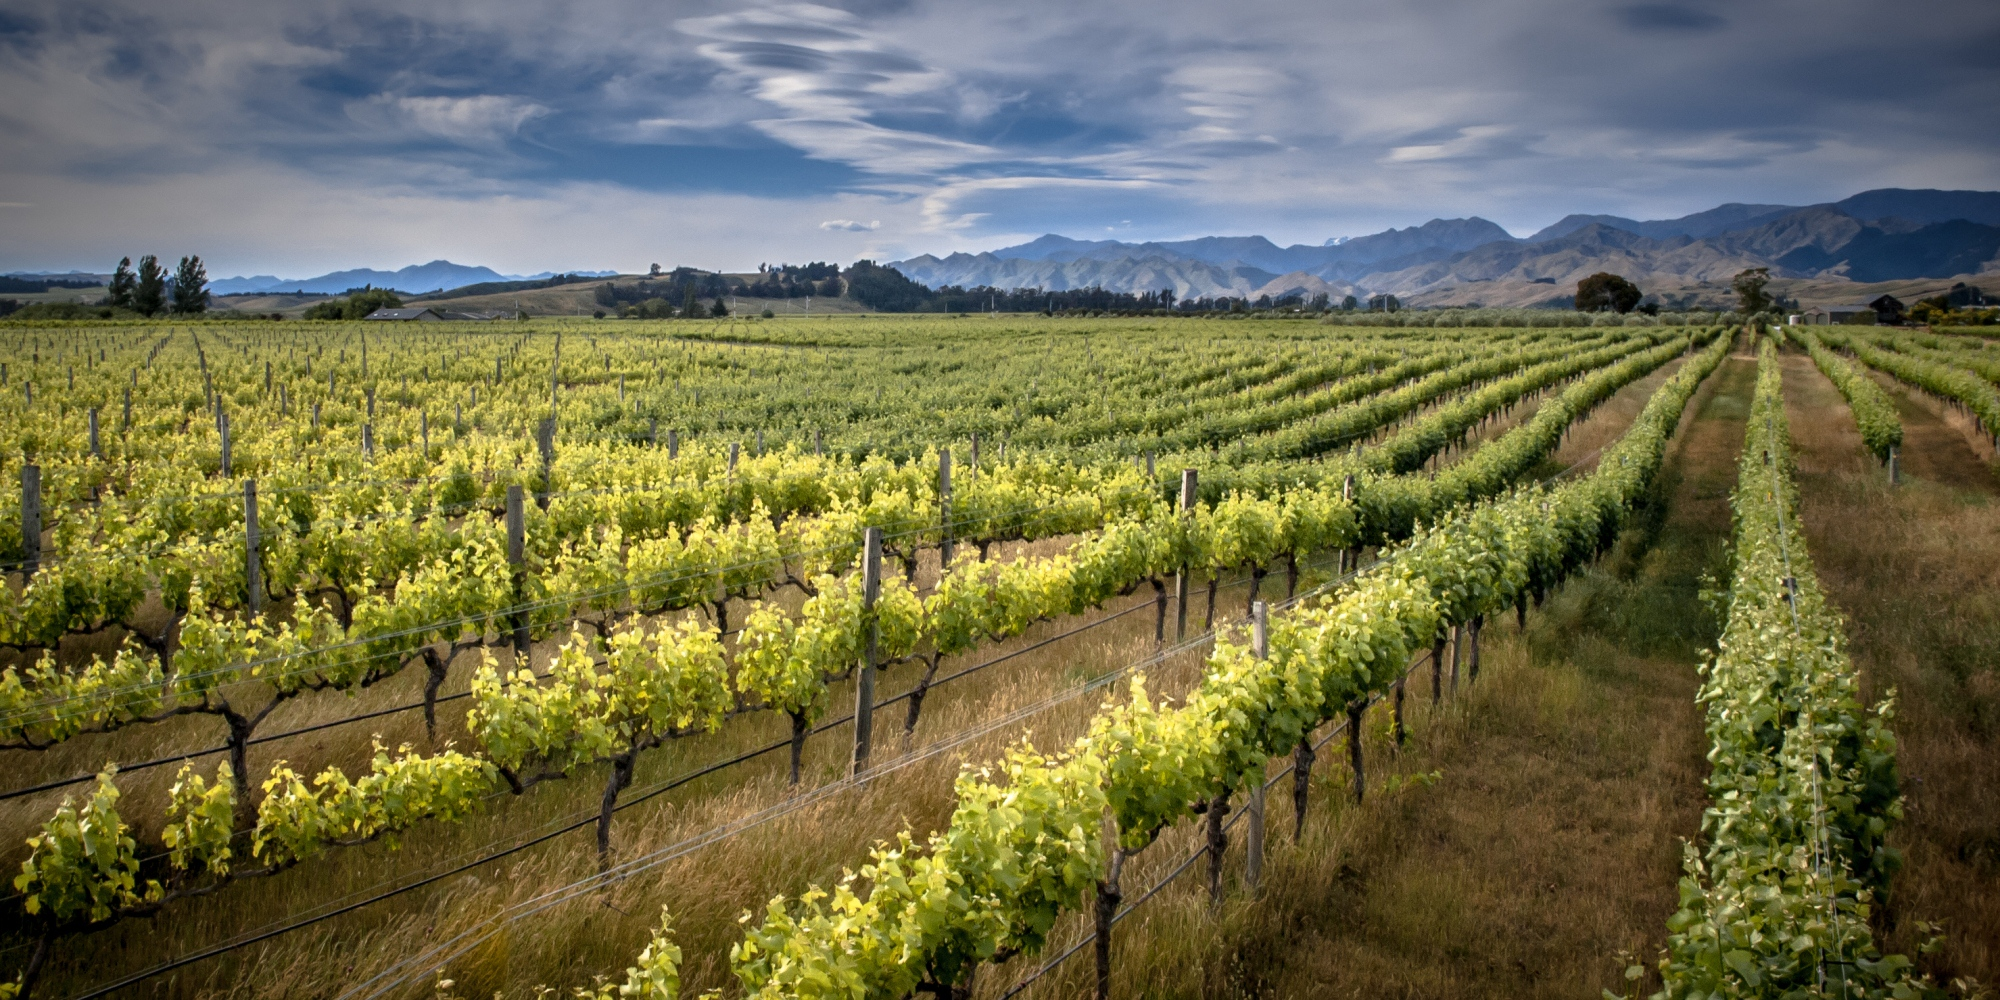 Some of the best vineyards in the world